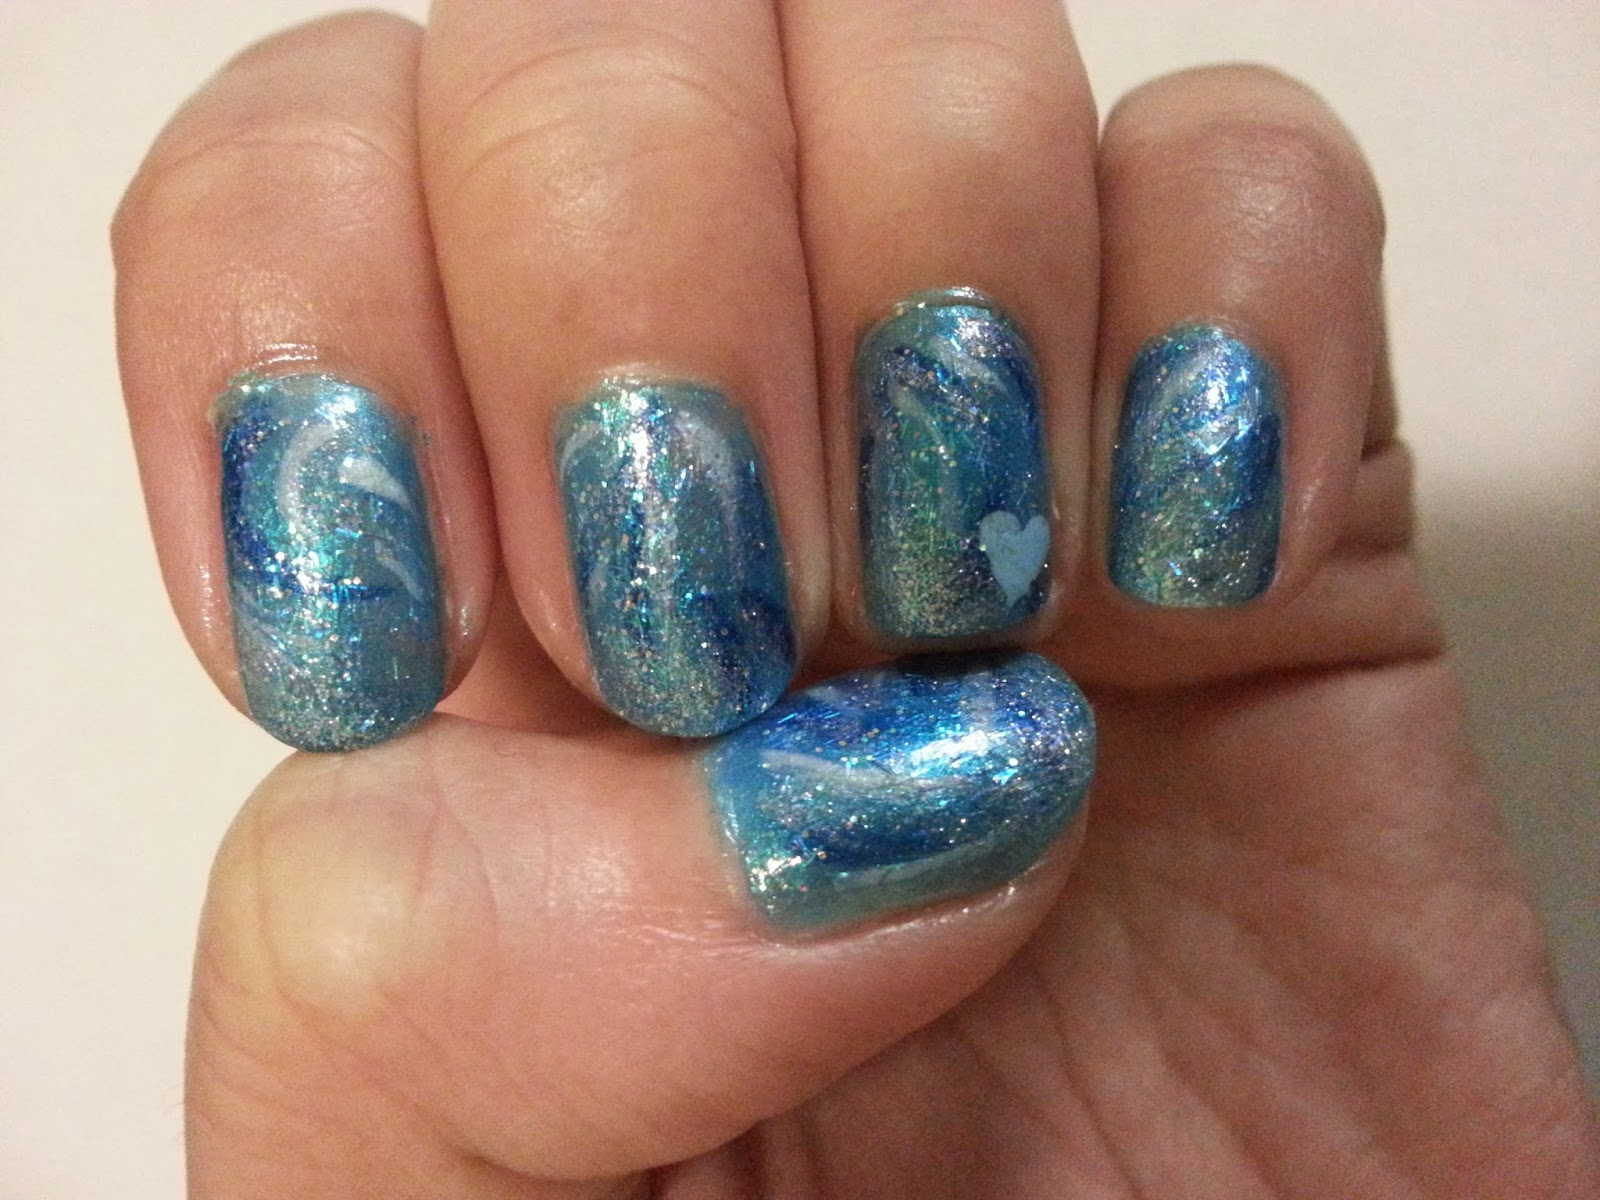 The Polished Bean: Frozen Inspired Elsa and Anna Nail Art